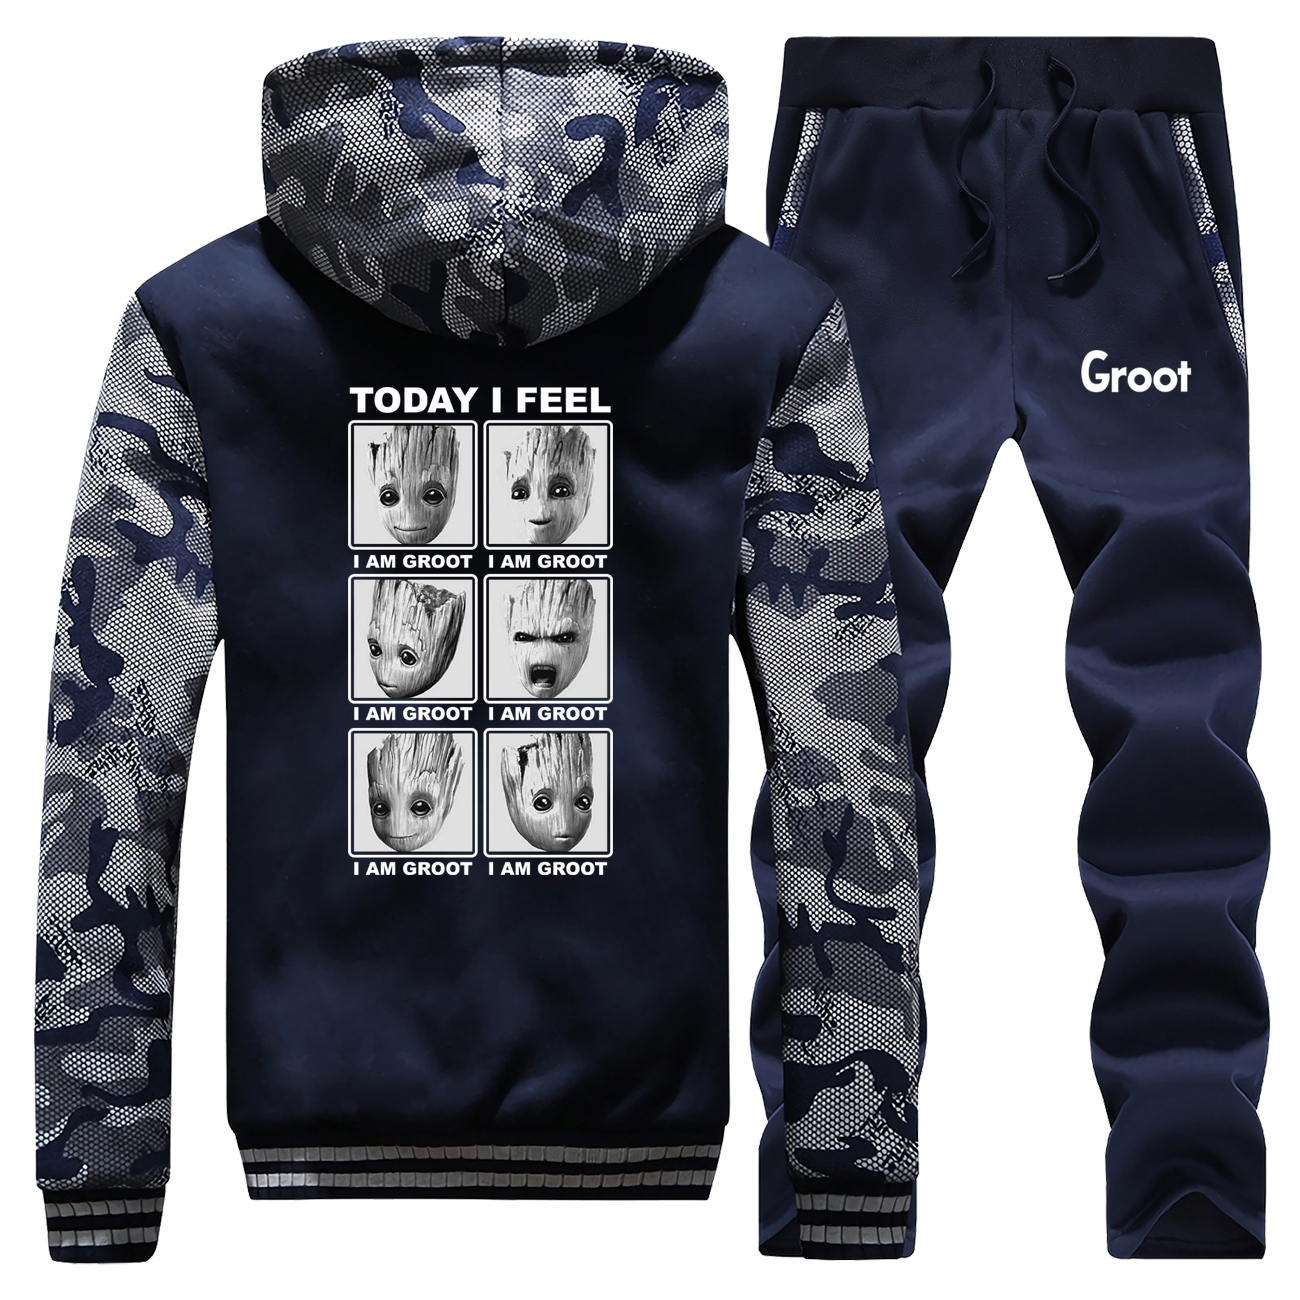 Today I Feel I Am Groot Thick Hoodies Men Hip Hop Hoodie Sweatshirt+Pants 2 Piece Sets Mens Fleece Warm Jacket Winter Tracksuit